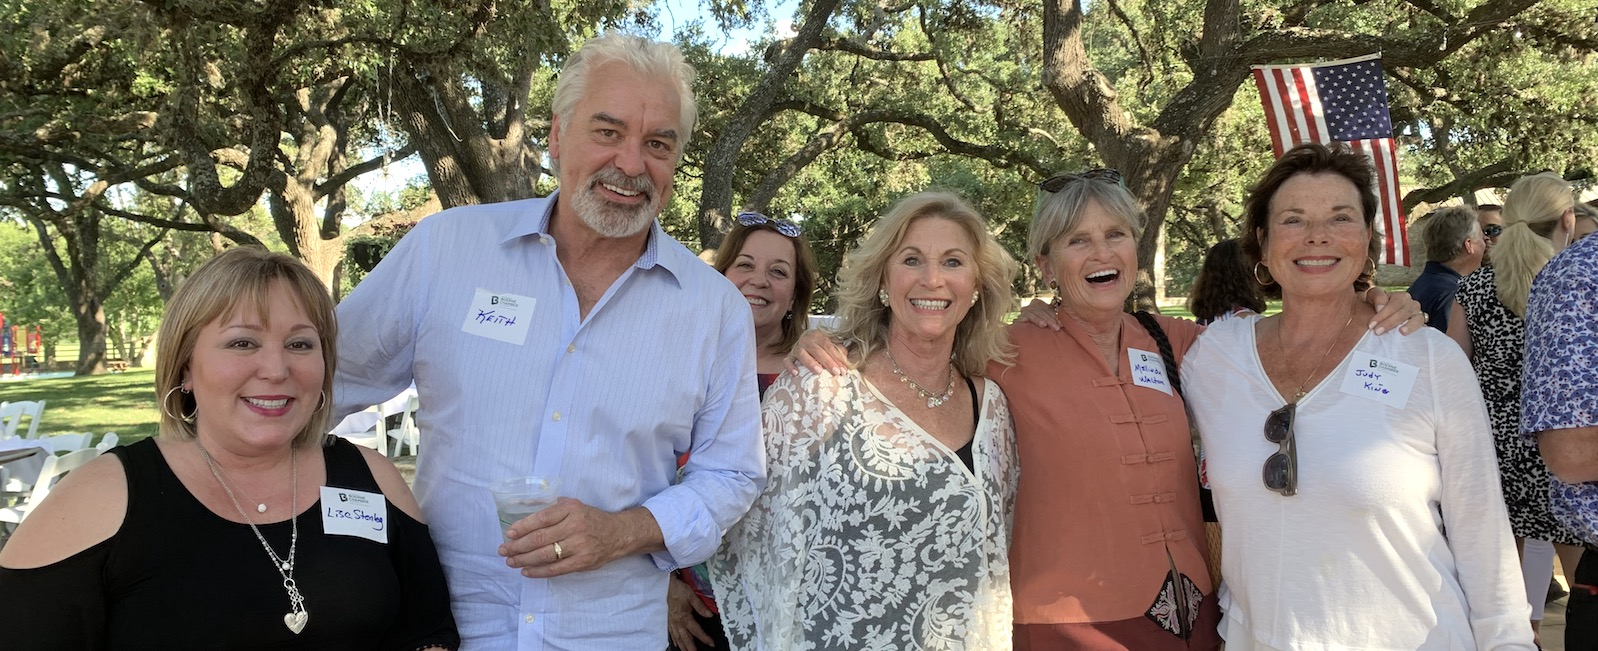 FORGCC Boerne After 5 Mixer Photo